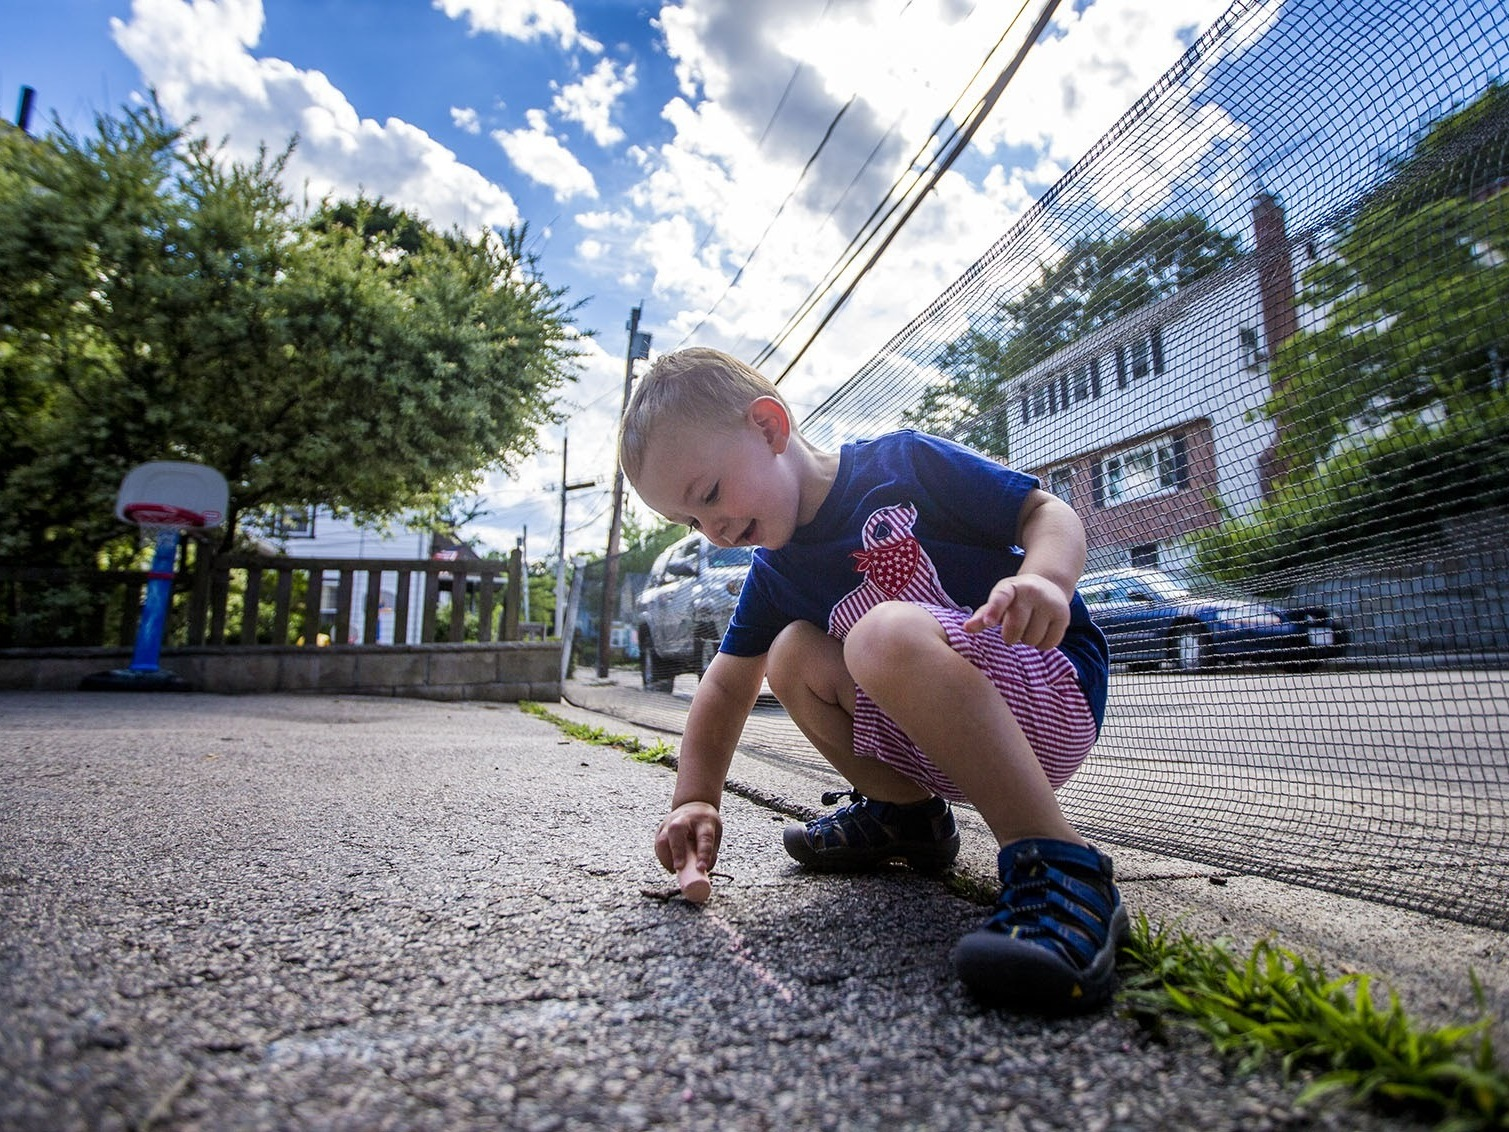 In Massachusetts, Proposed Medicaid Cuts Put Kids' Health Care At Risk